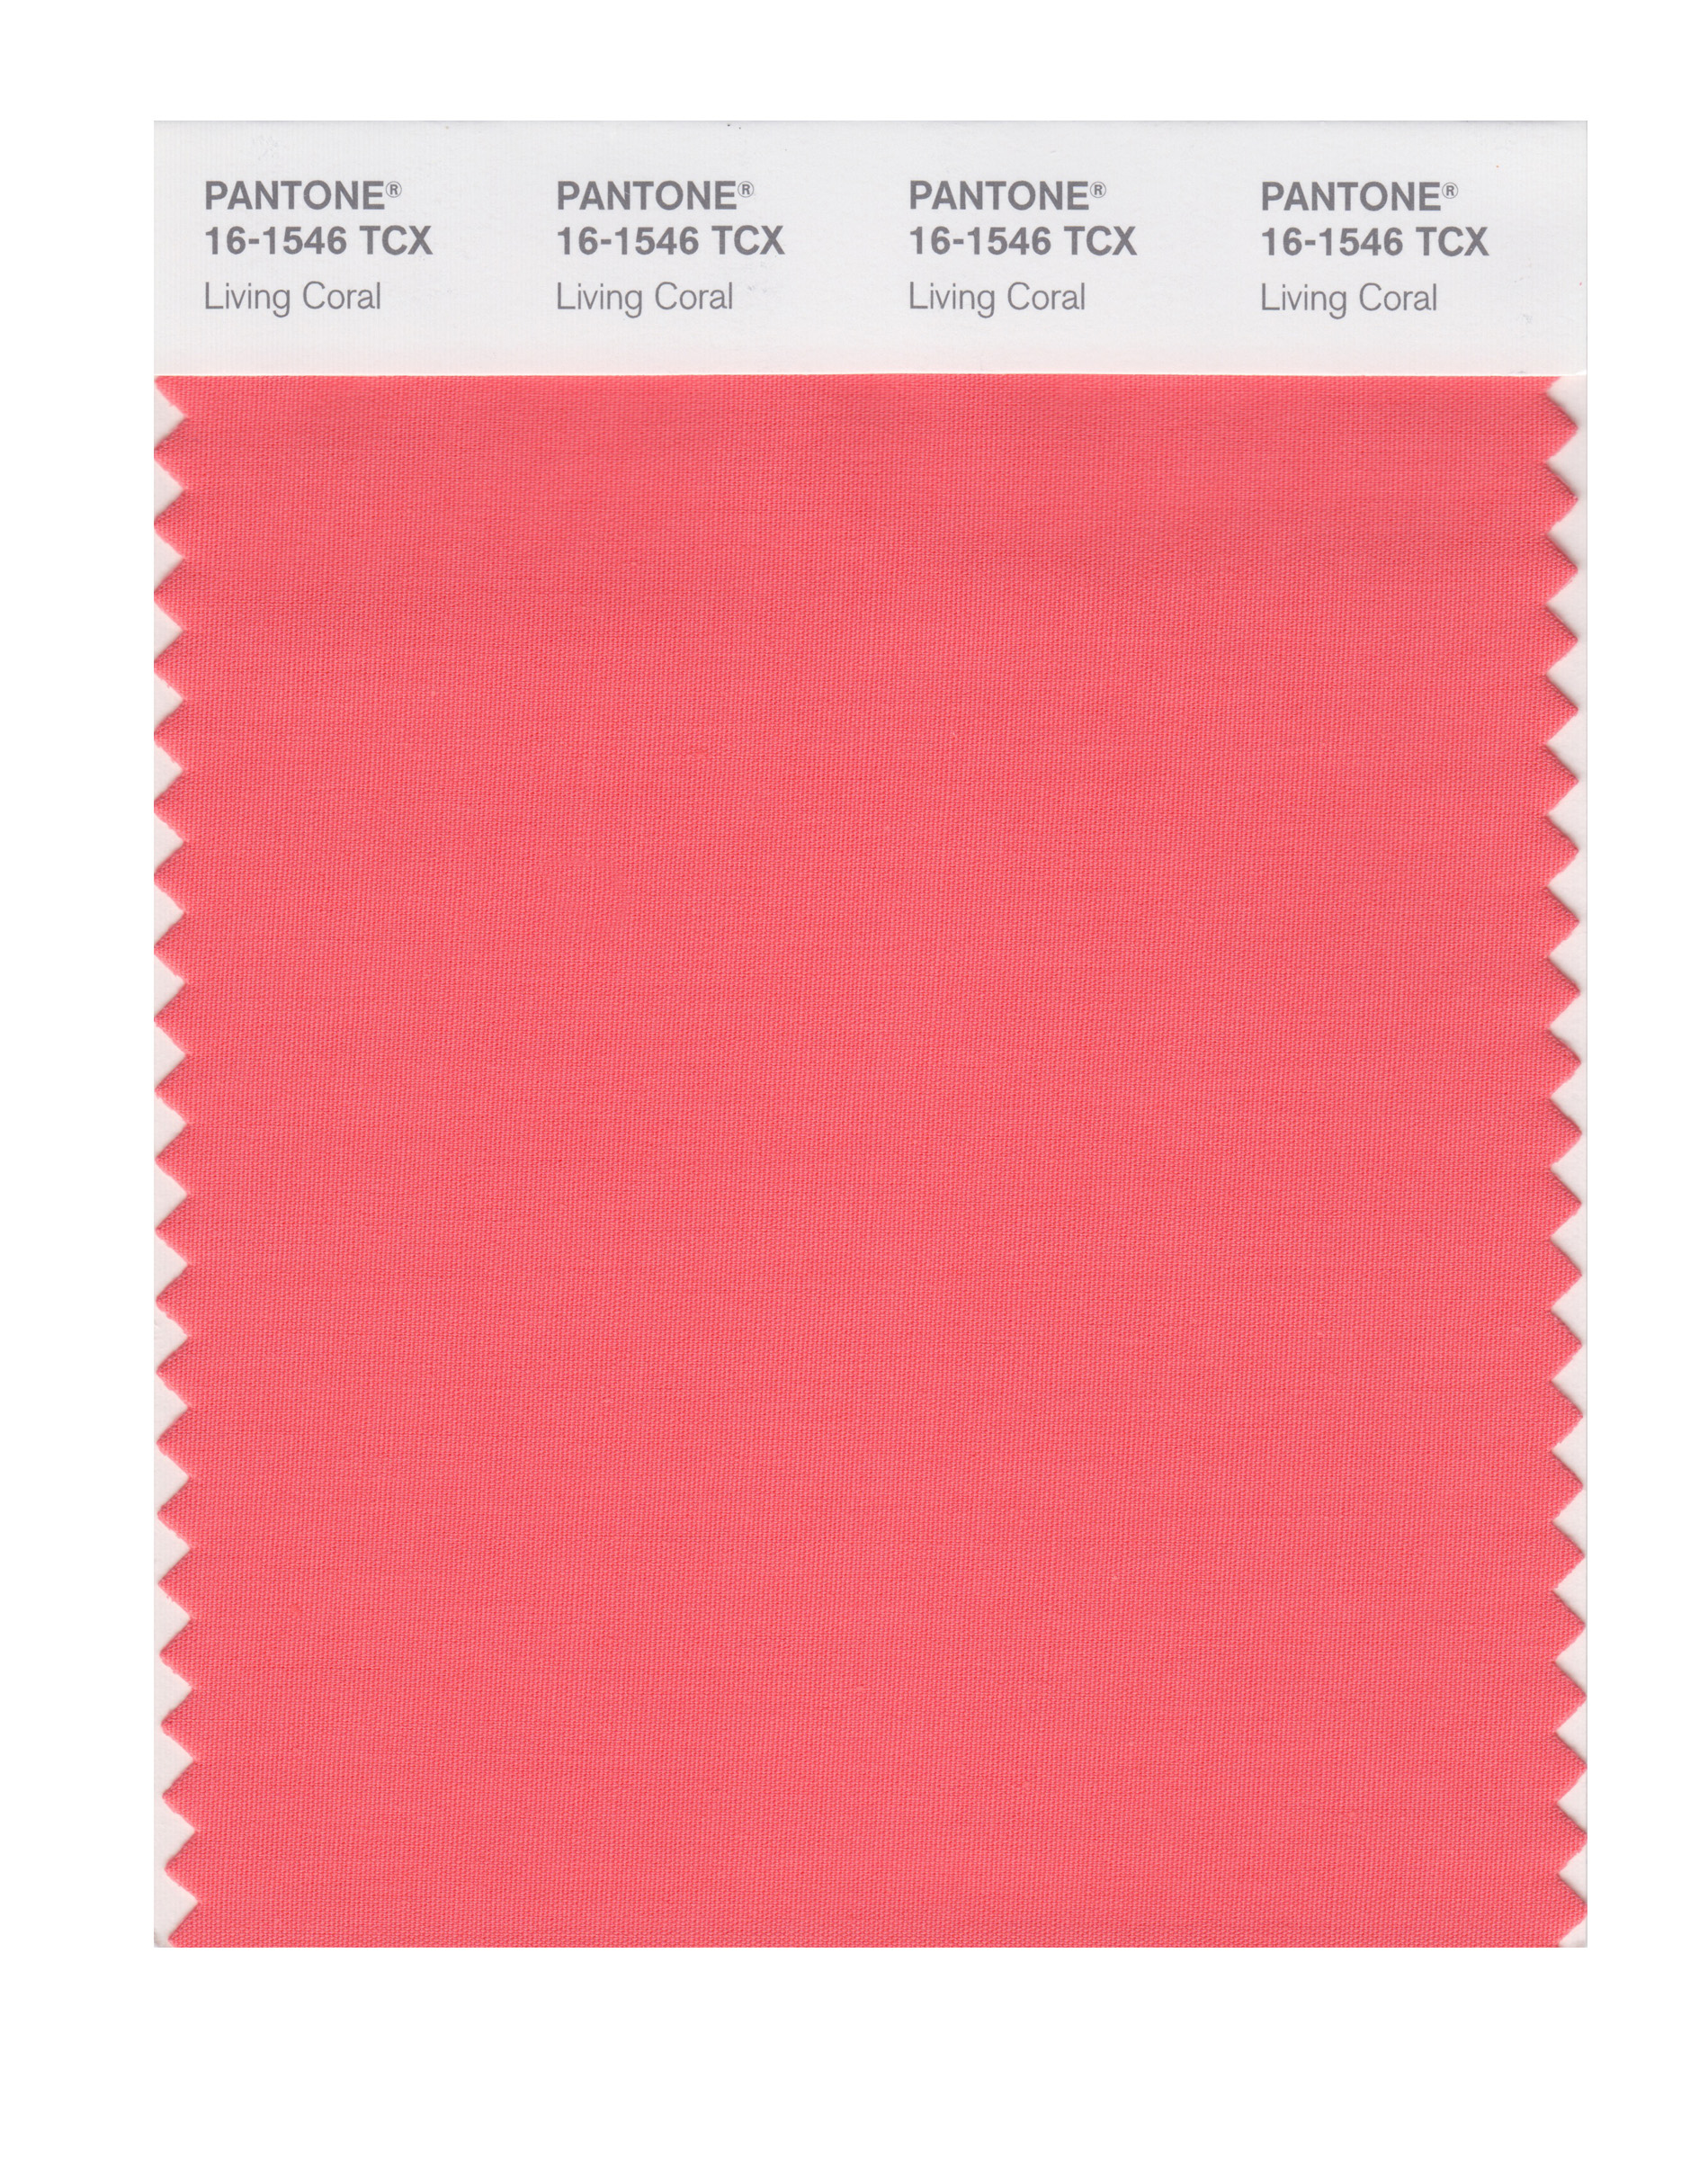 Photos of Pantone's Color of the Year Predictions Since 2000